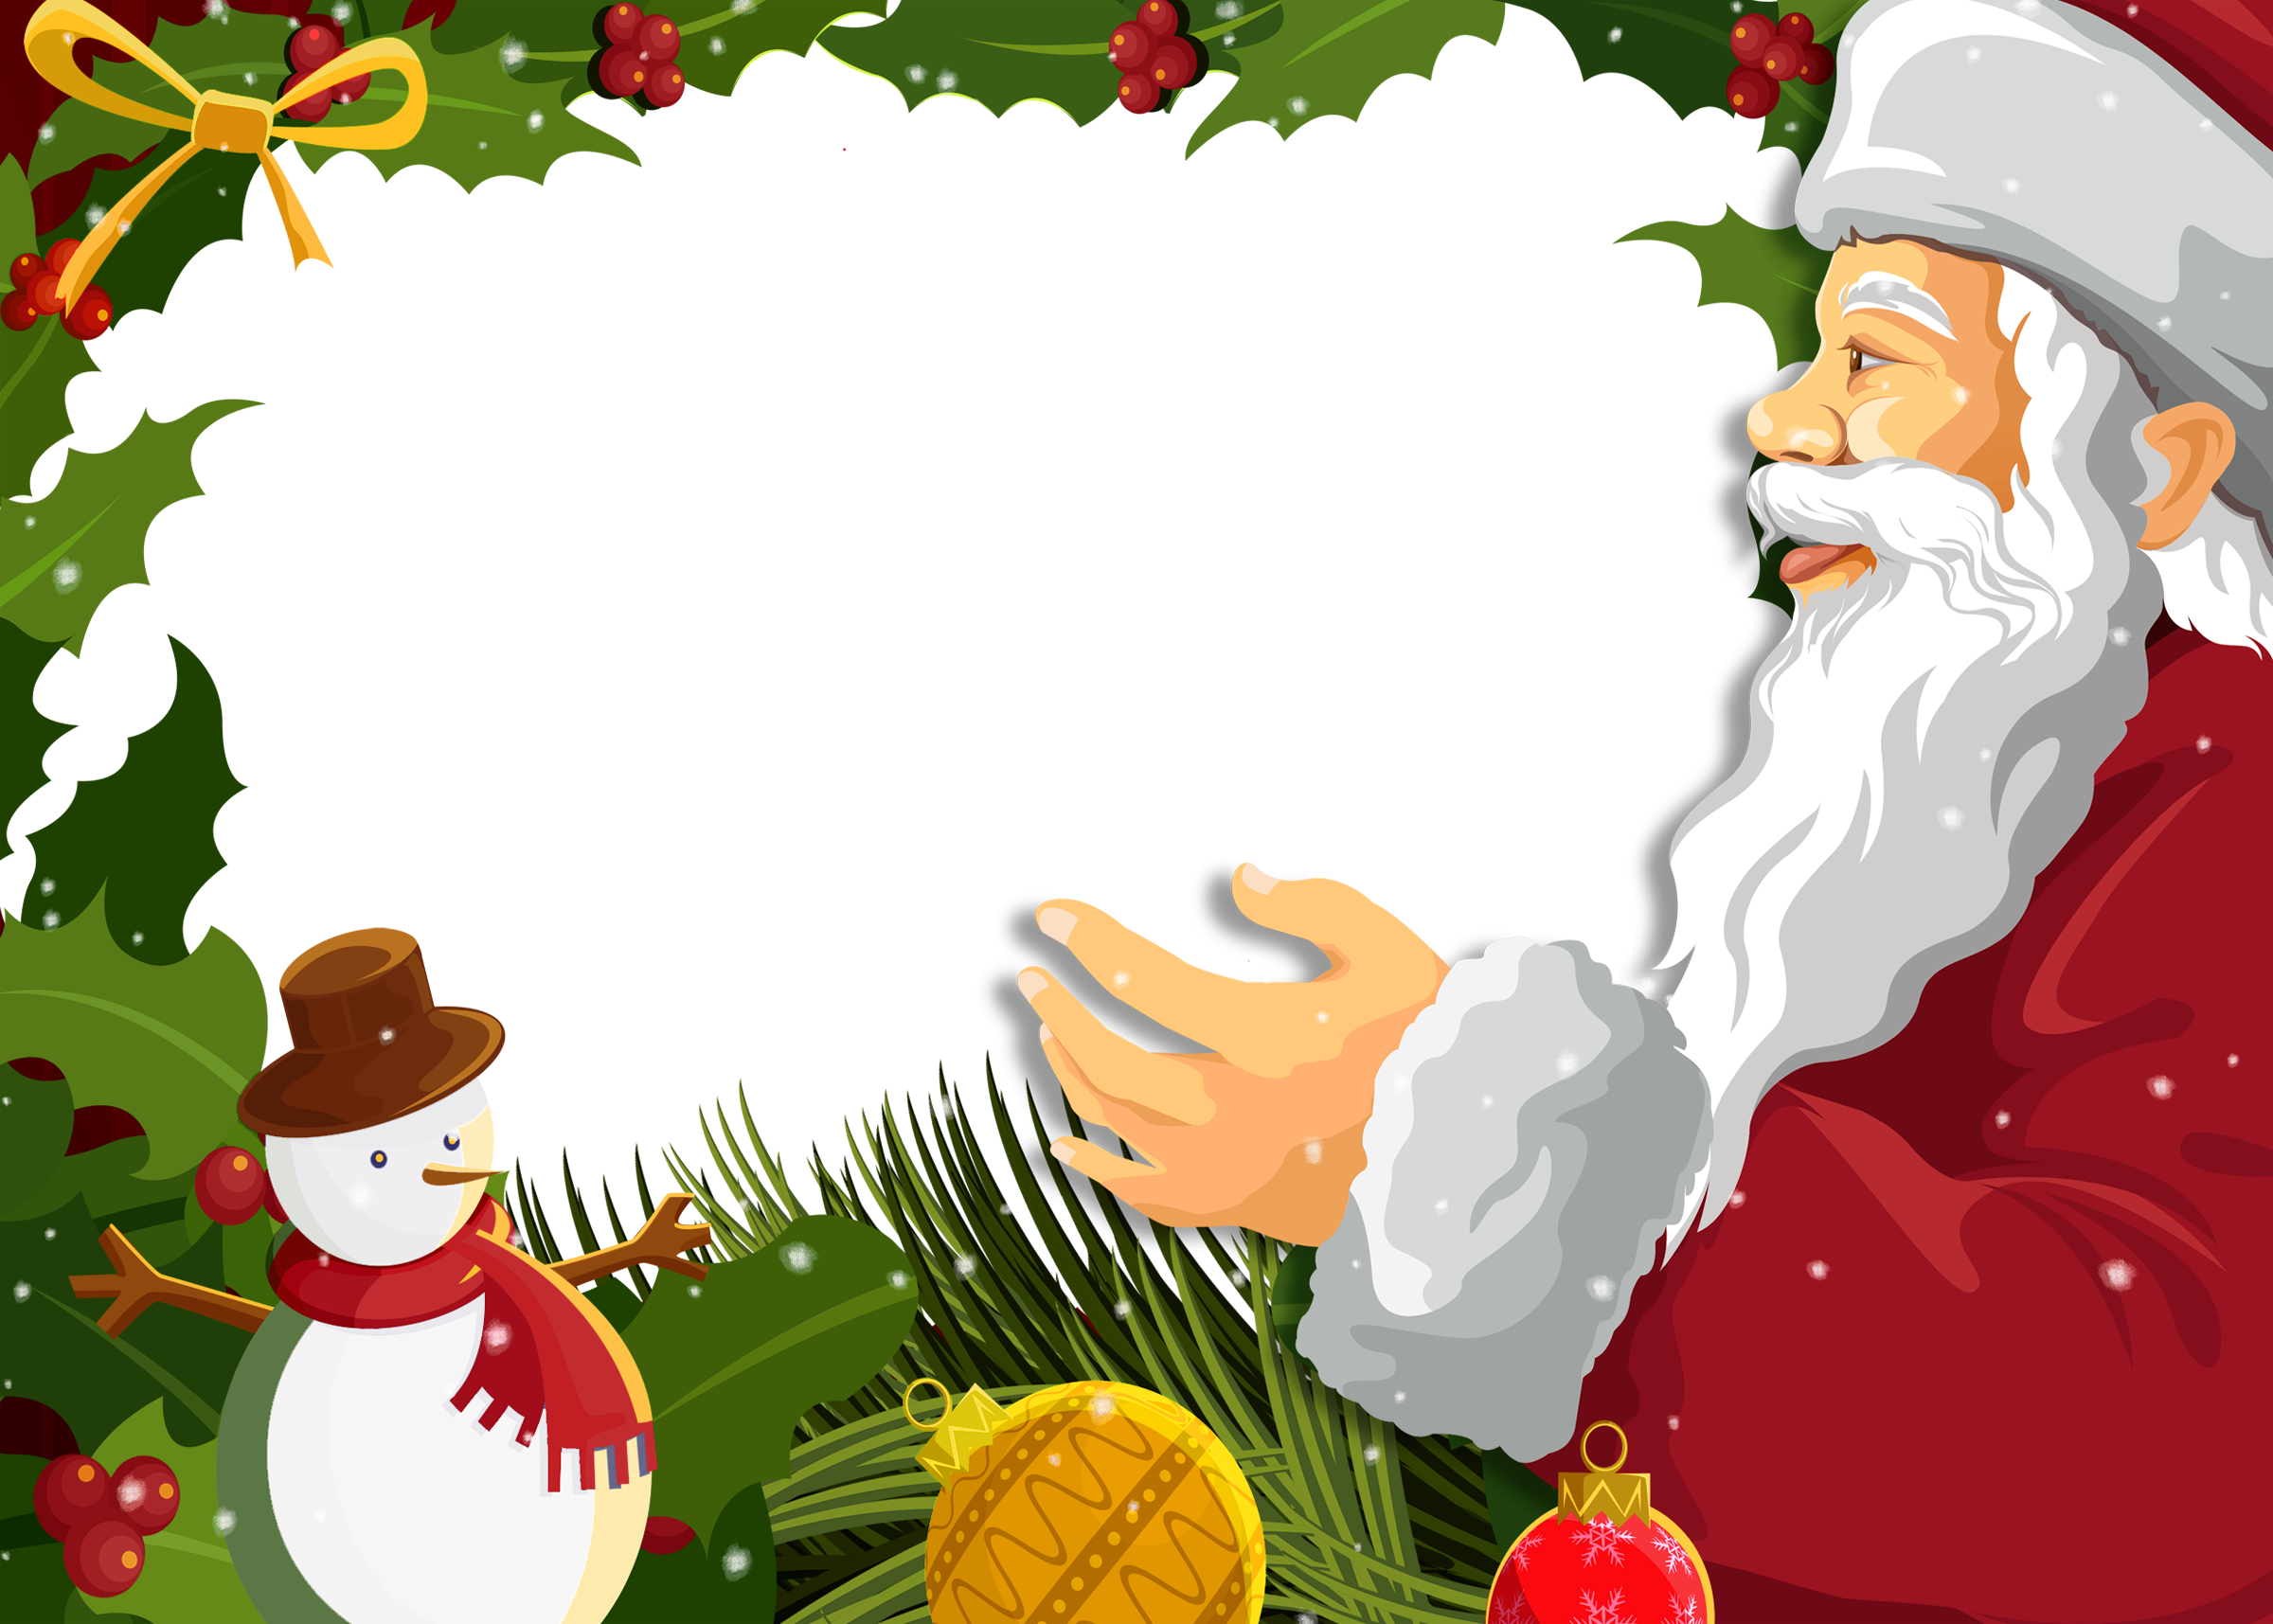 Frame clipart santa claus Full Transparent View Christmas Photo